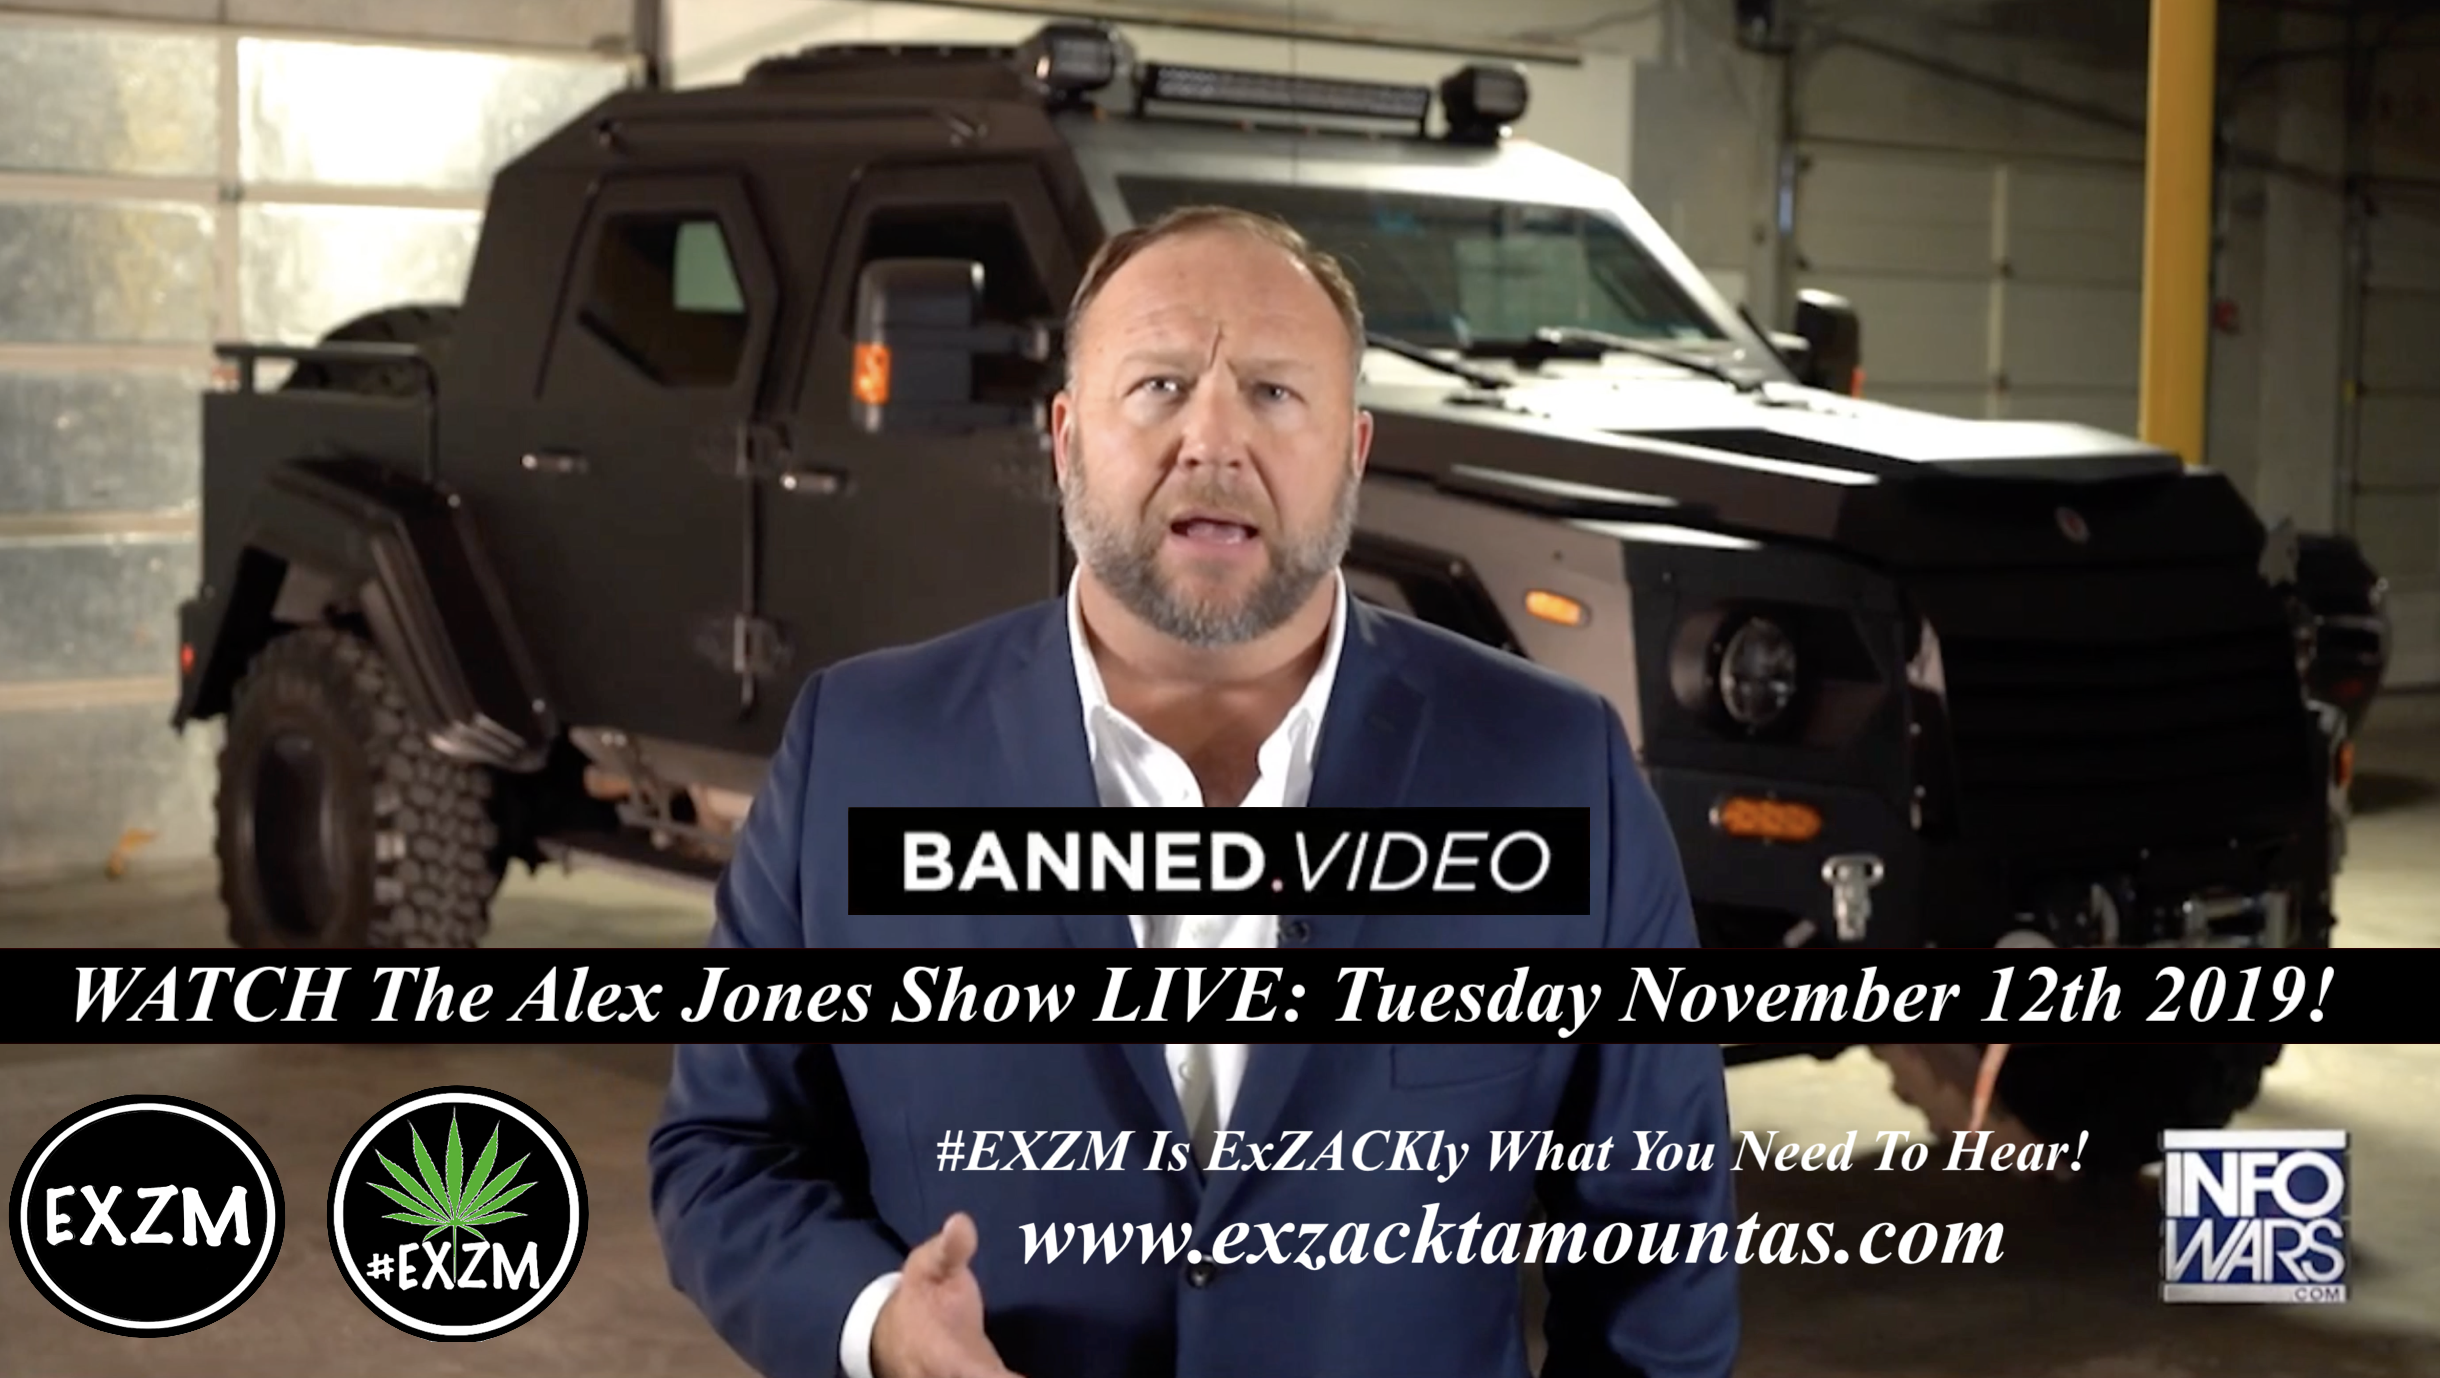 EXZM-Alex-Jones-Post-11-12-2019